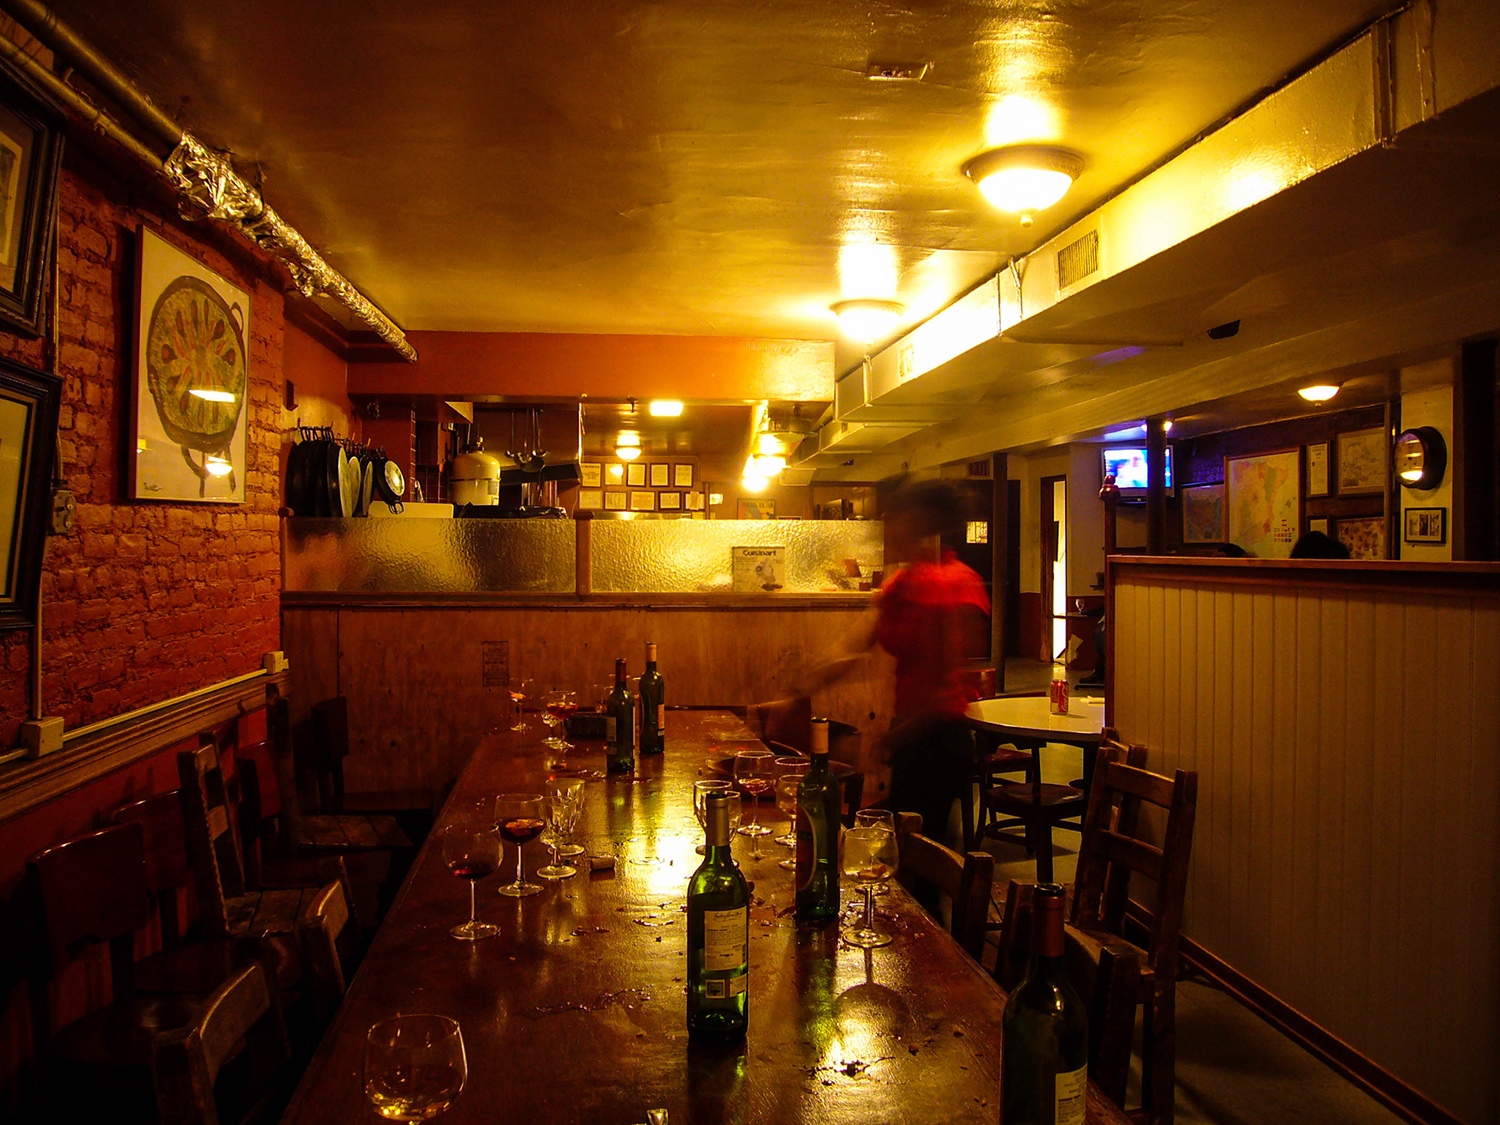 <p>The remnants of a group's good night out at La Nacional, a Spanish social club in New York.<br /></p>